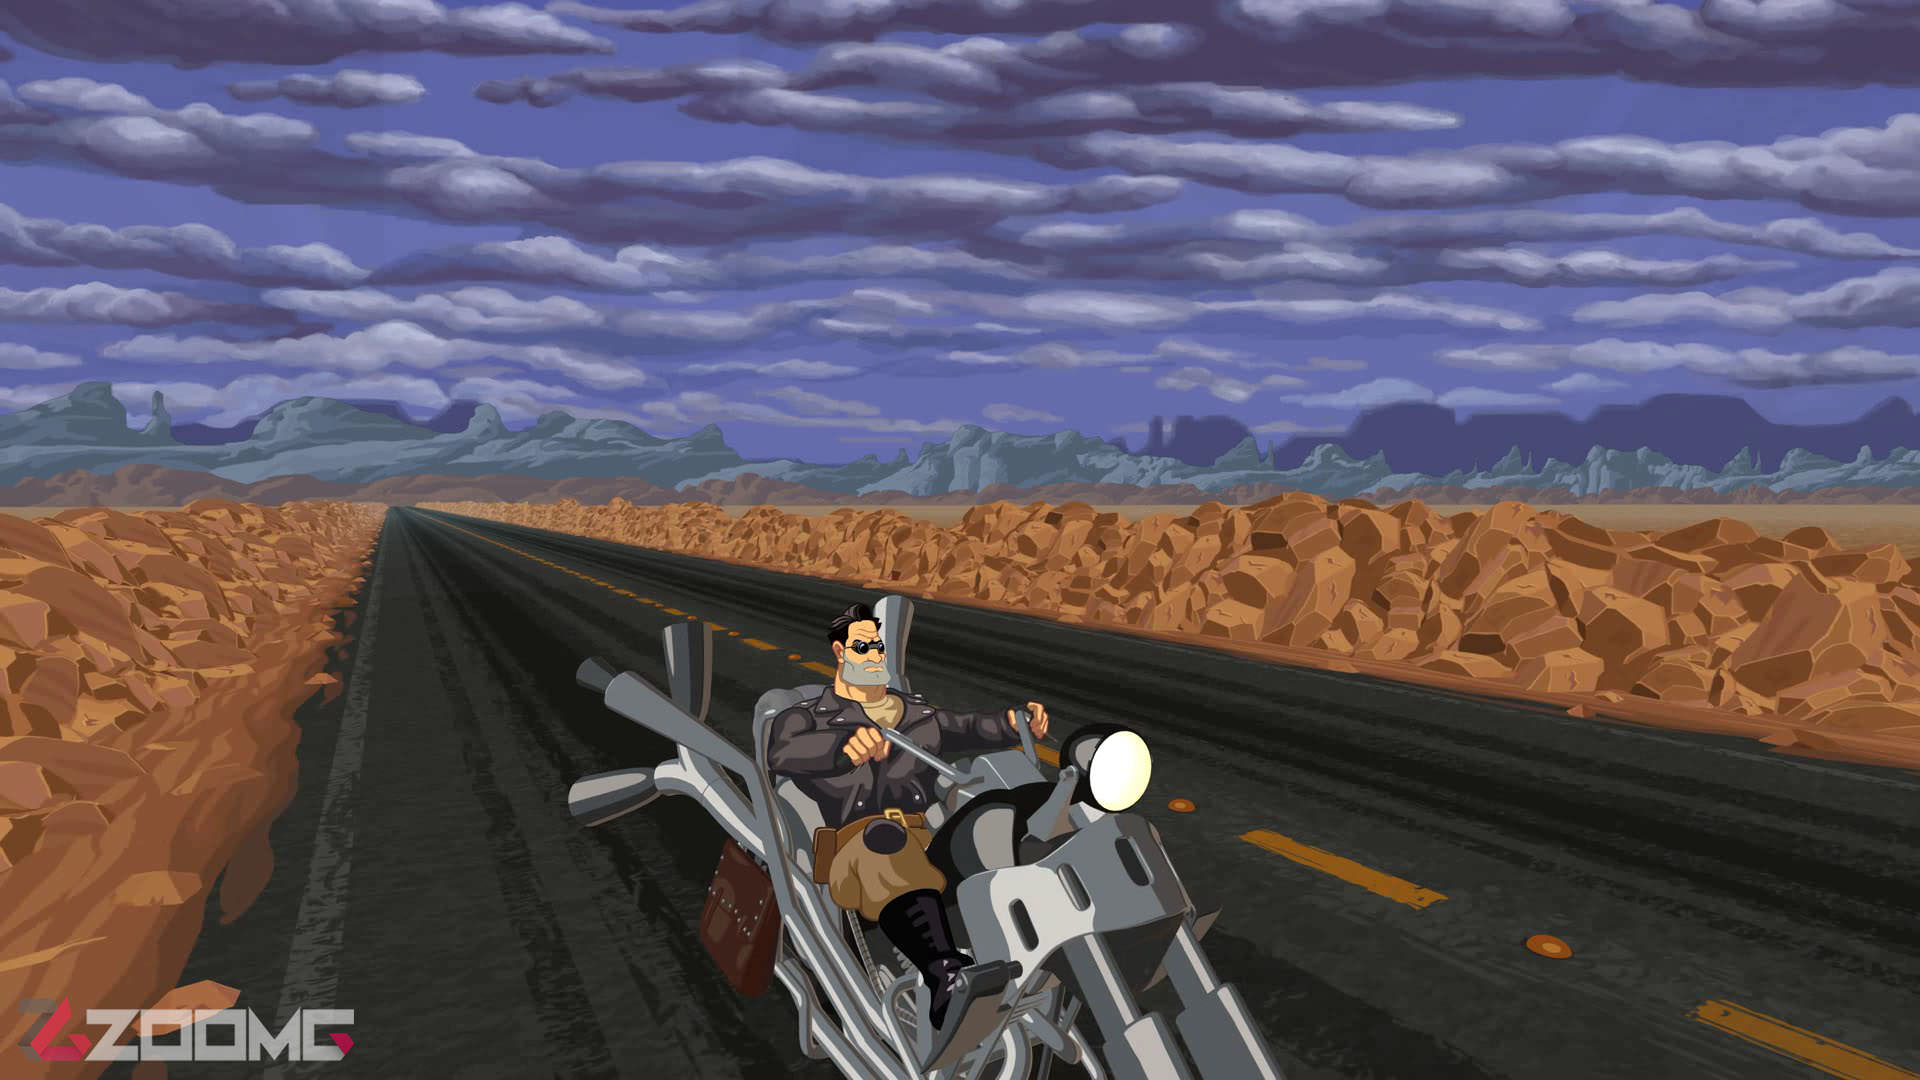 بررسی بازی Full Throttle Remastered